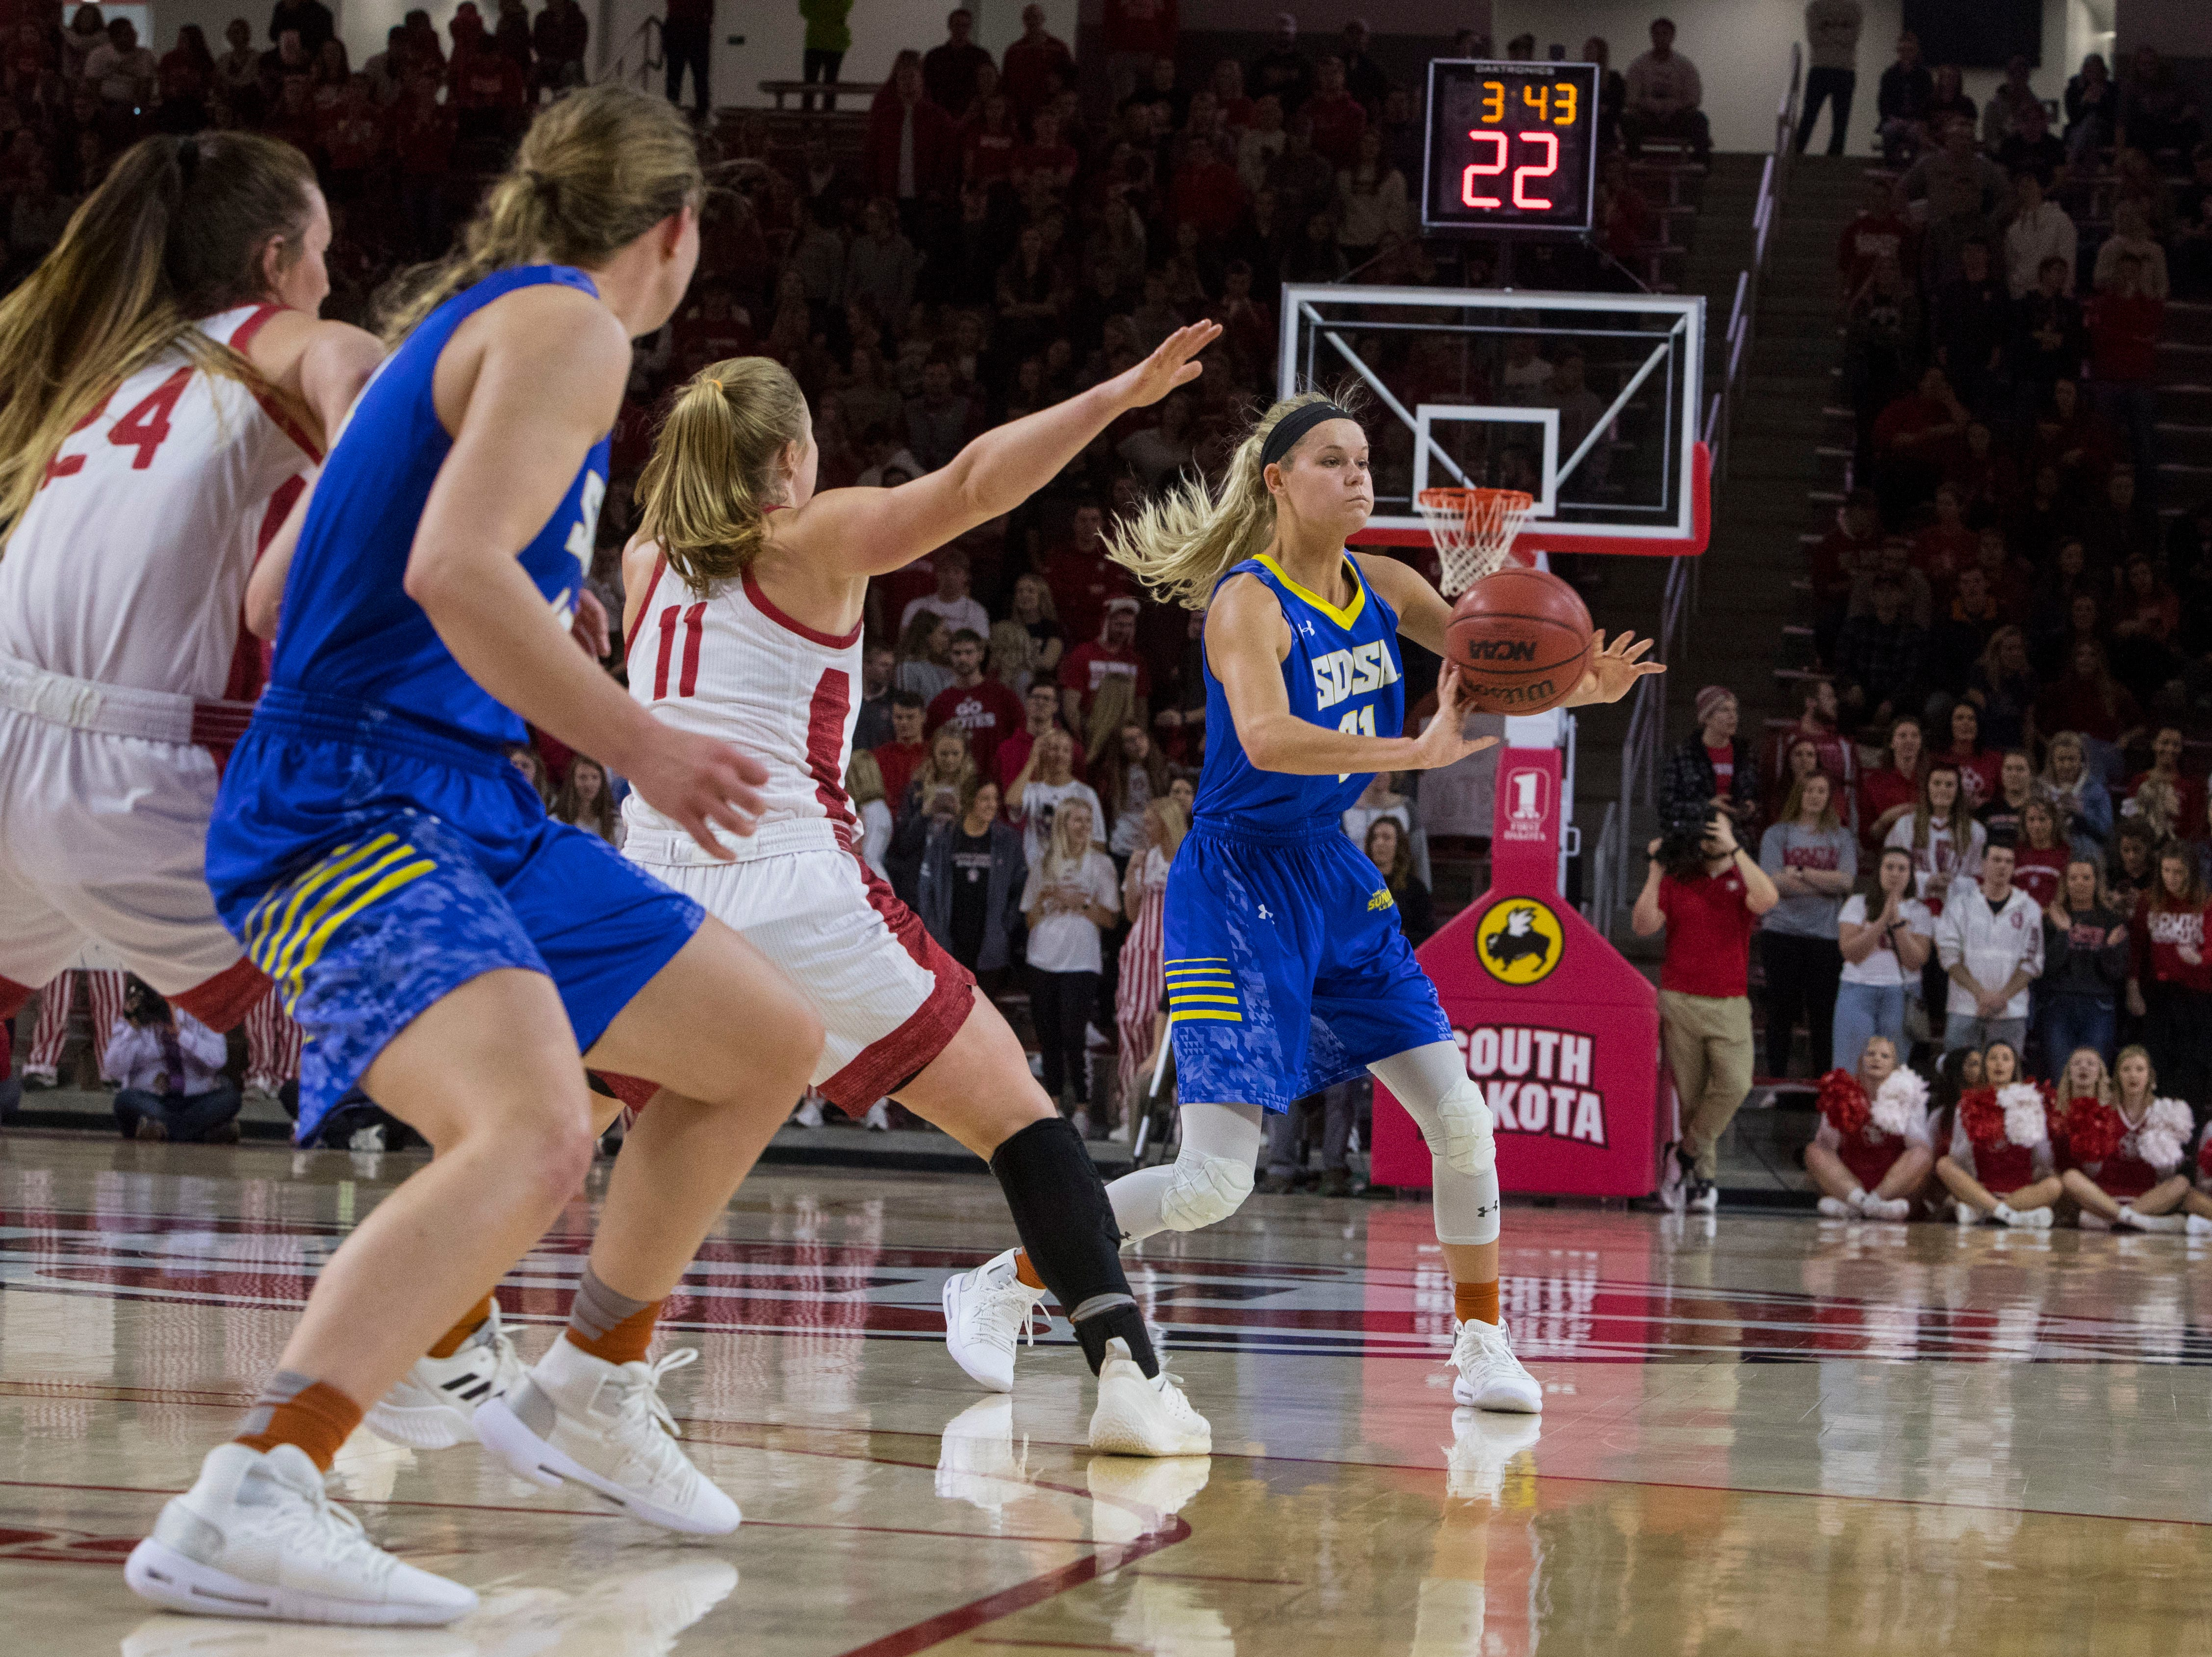 SDSU's Tylee Irwin (21) passes the ball during a game against USD, Sunday, Jan. 6, 2019 in Vermillion, S.D.